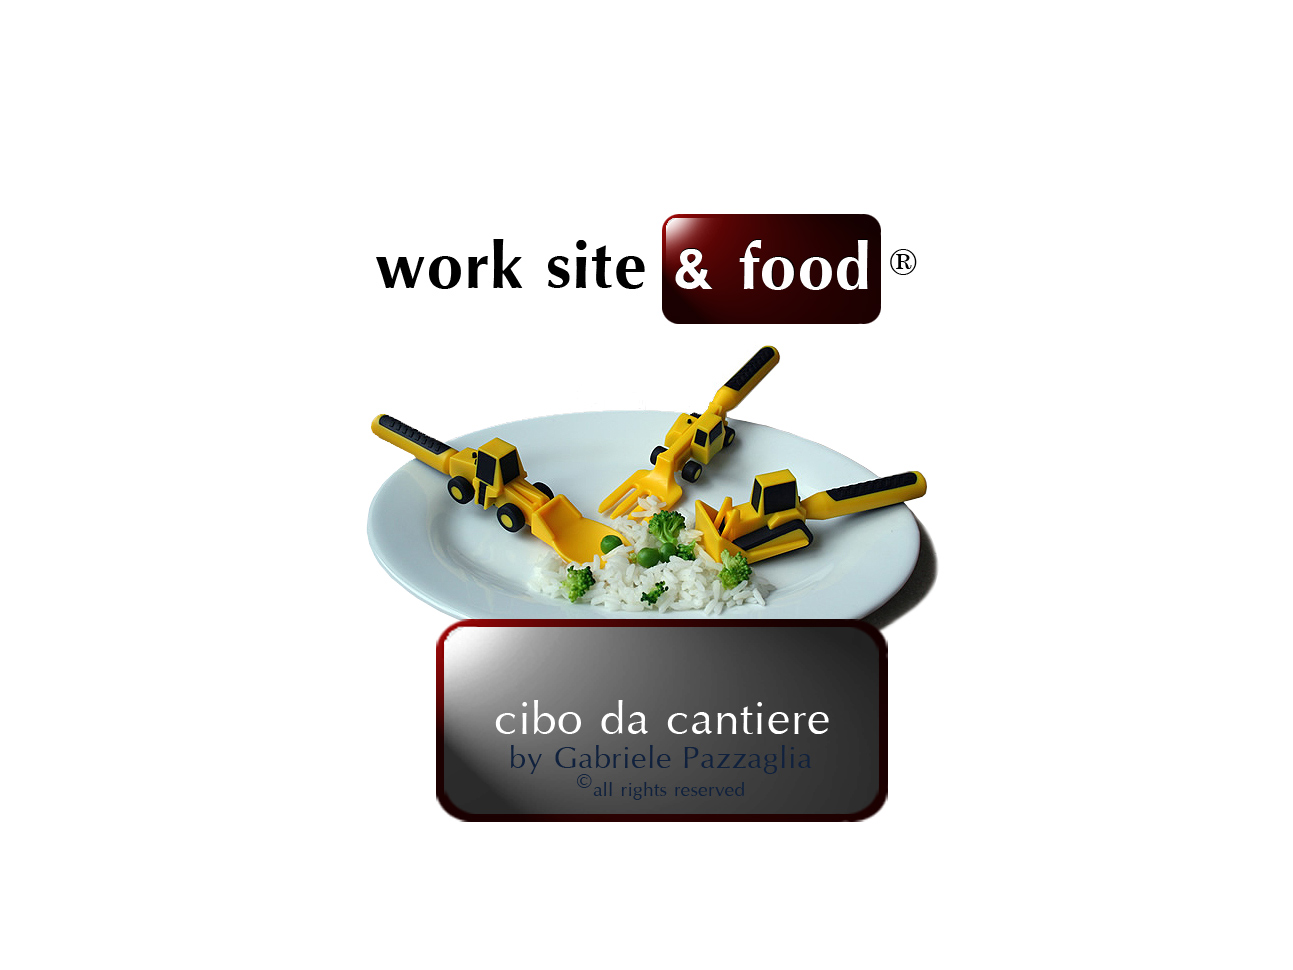 work_site_&_food_Page_no_00